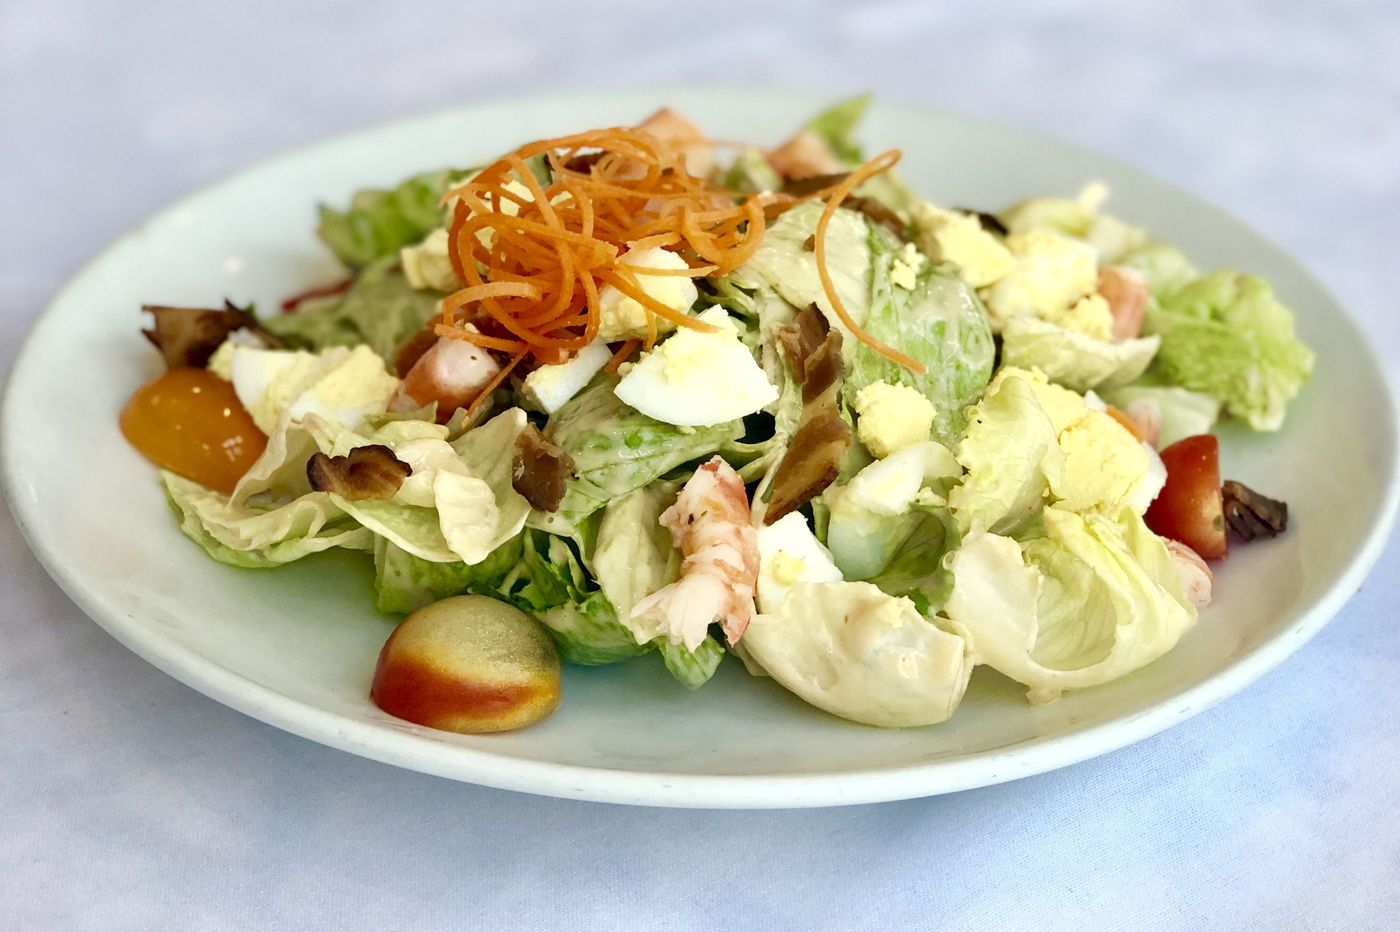 Lettuce remember the Milan salad, a Philly classic